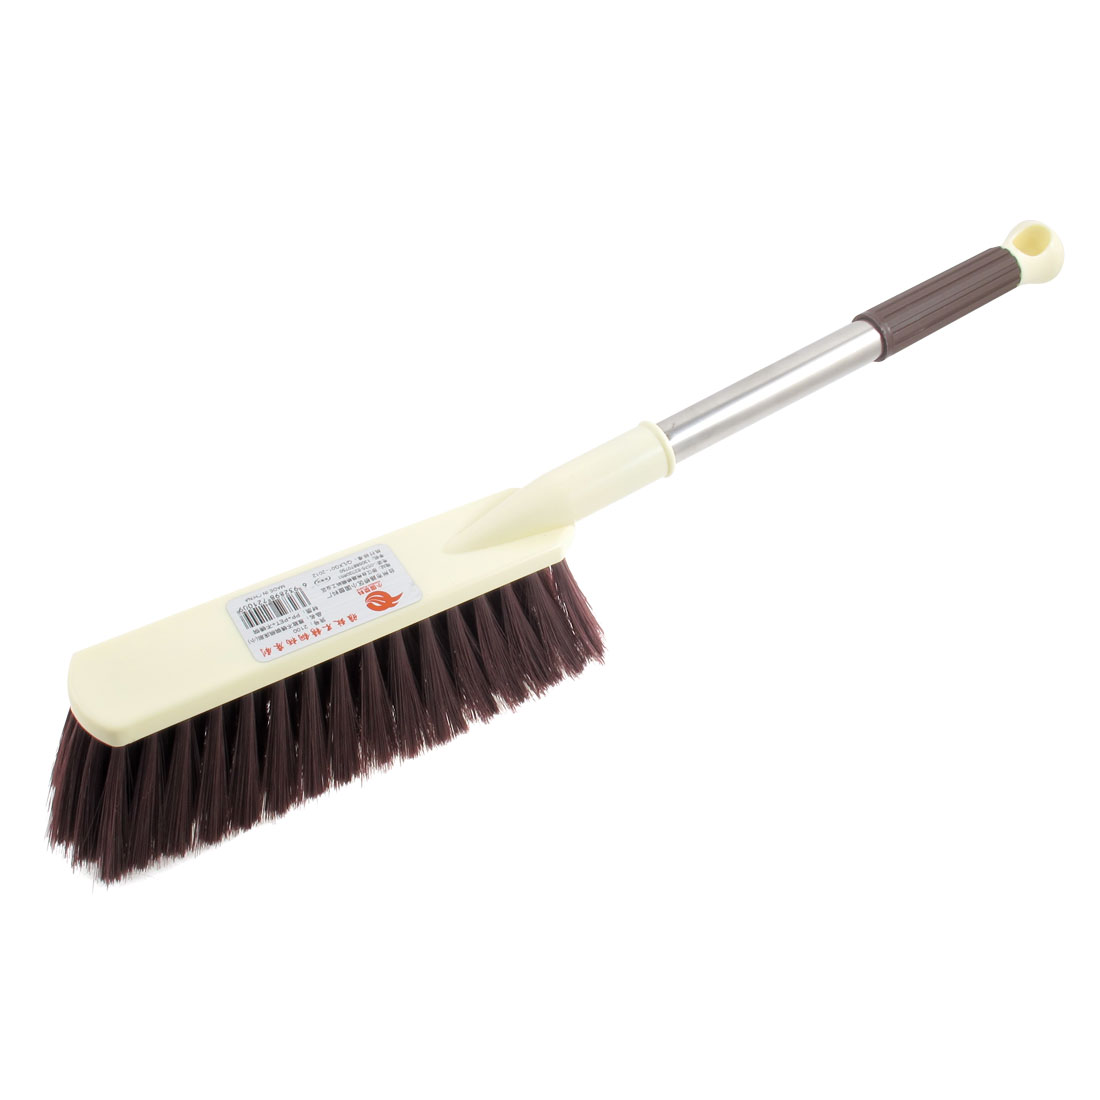 Stainless Steel Handle Auto Car Cleaning Brush Scrubbing Washing Tool